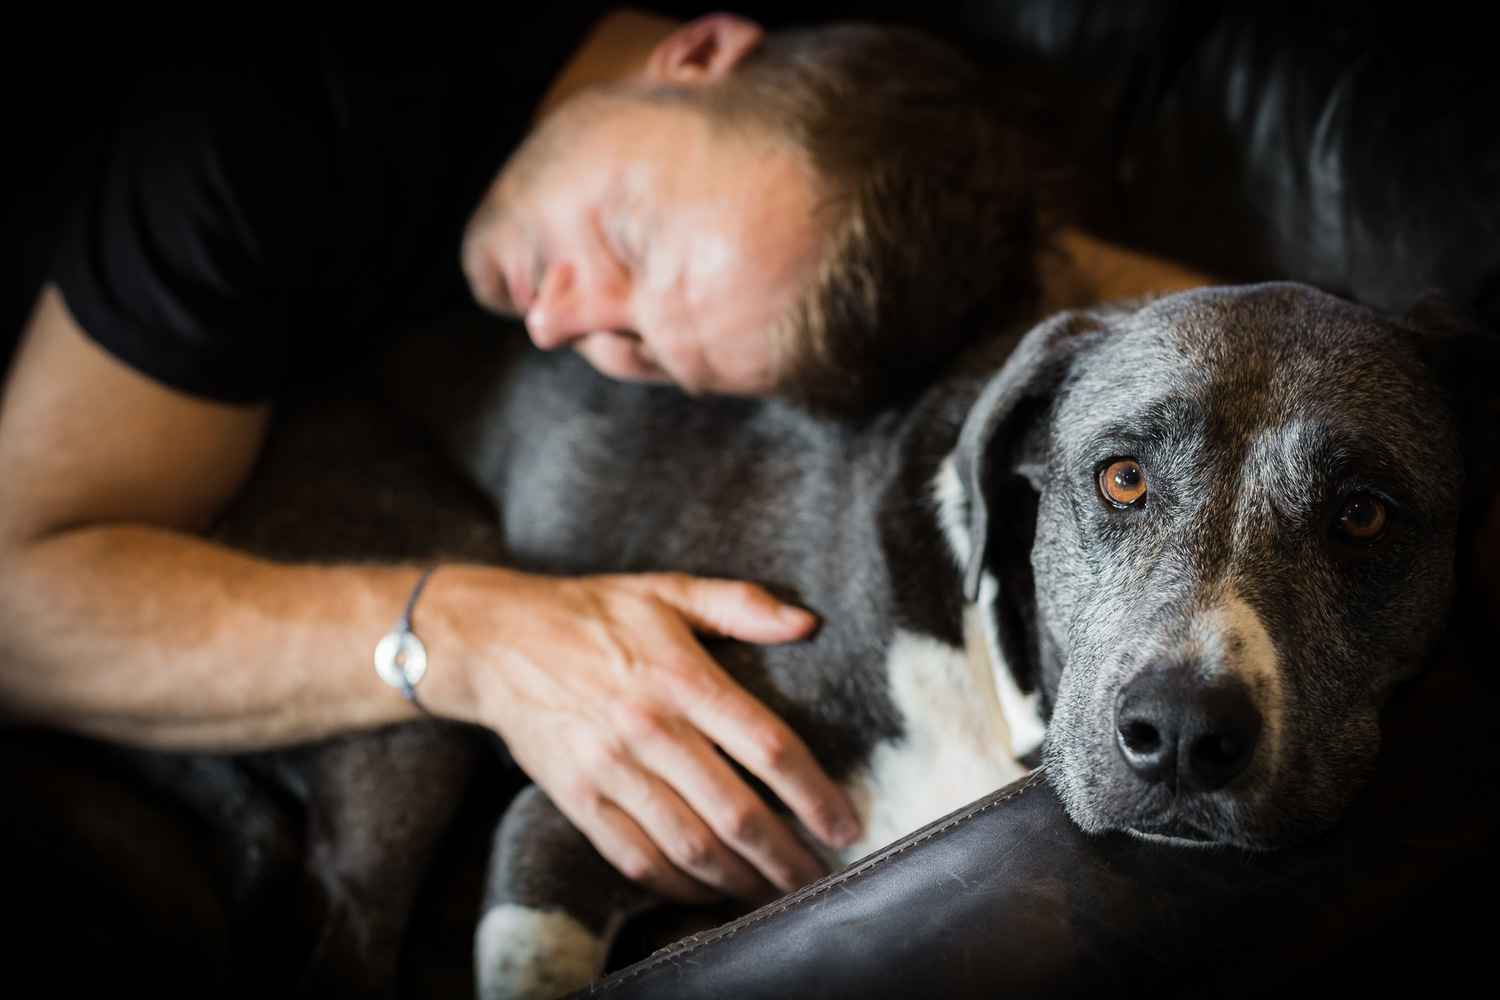 Owner cuddling on a couch his rescue dog.